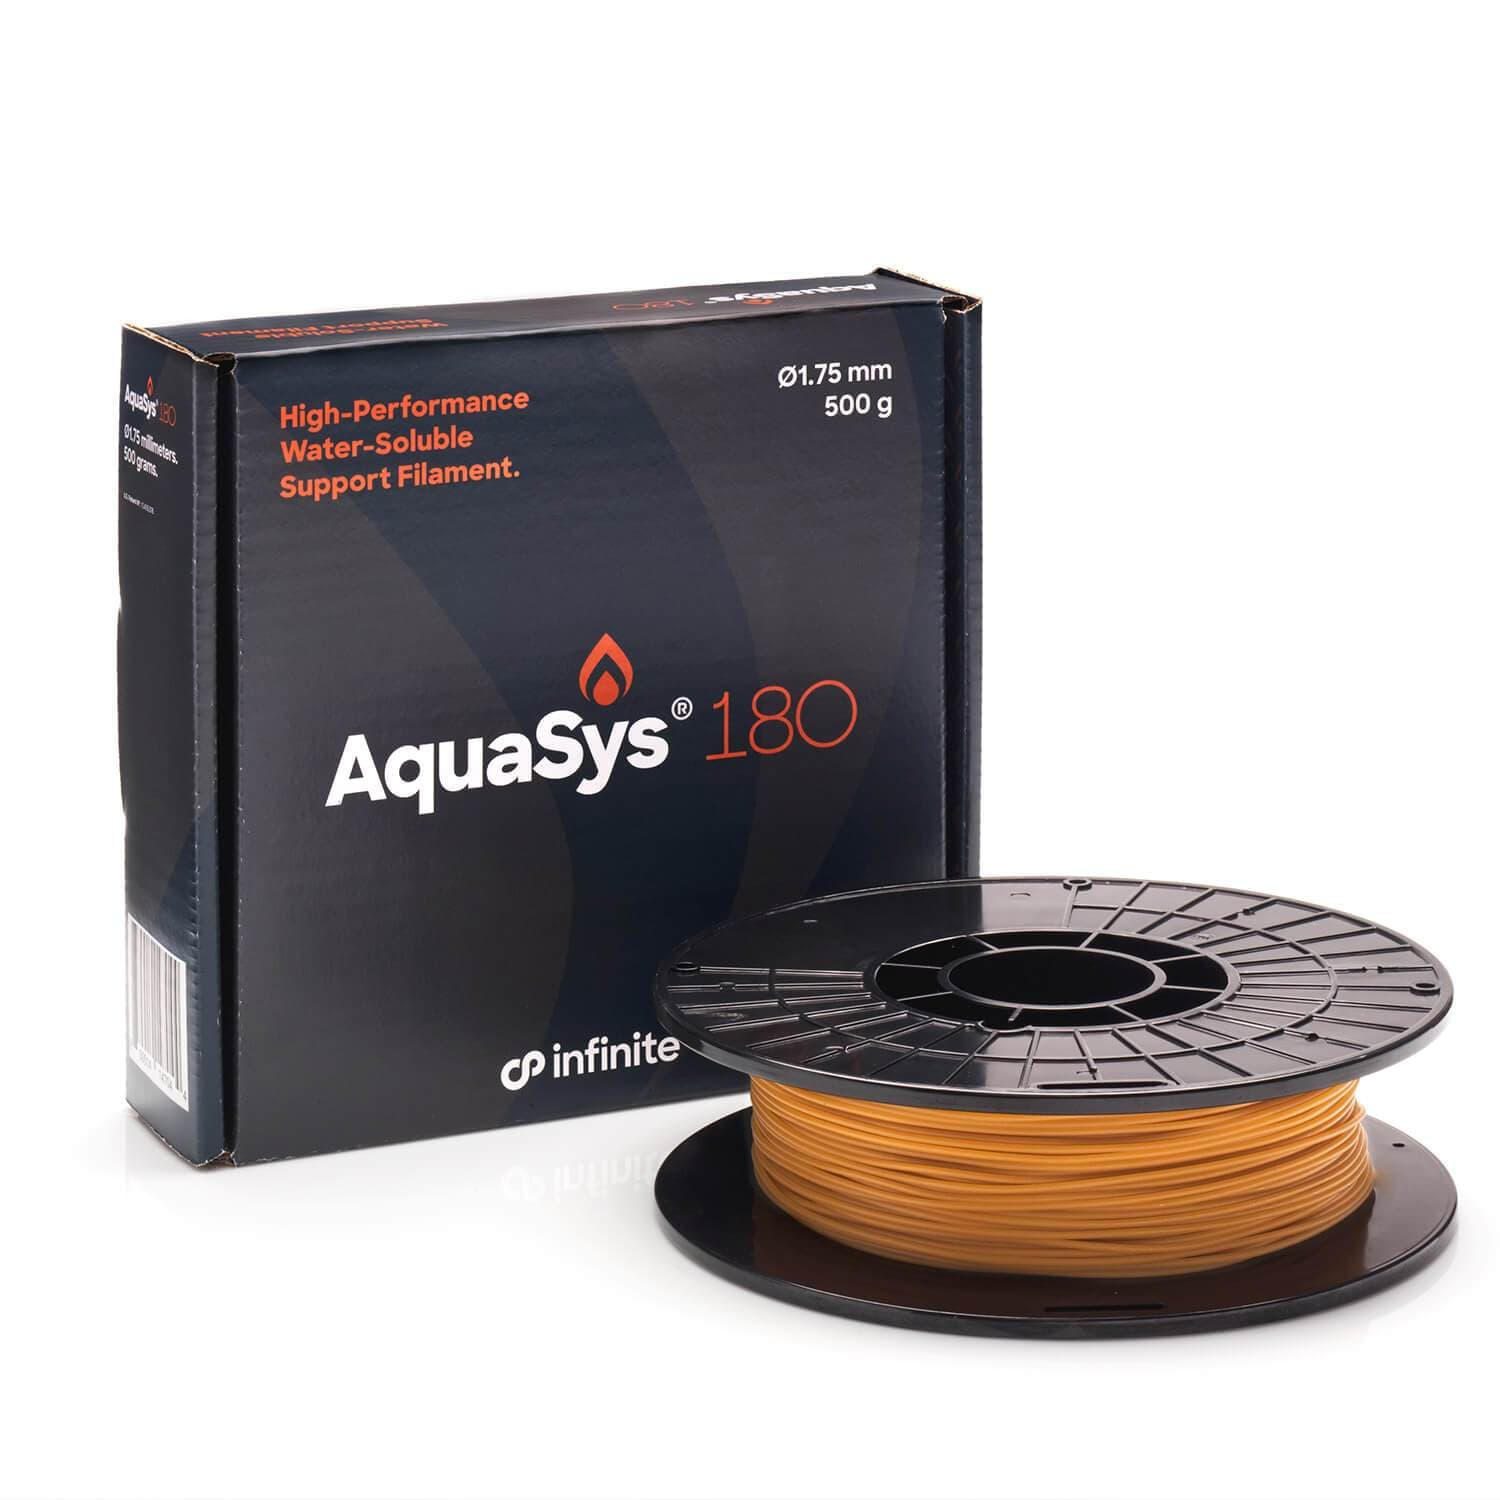 AquaSys 180 500g Infinite Material Solutions Filament